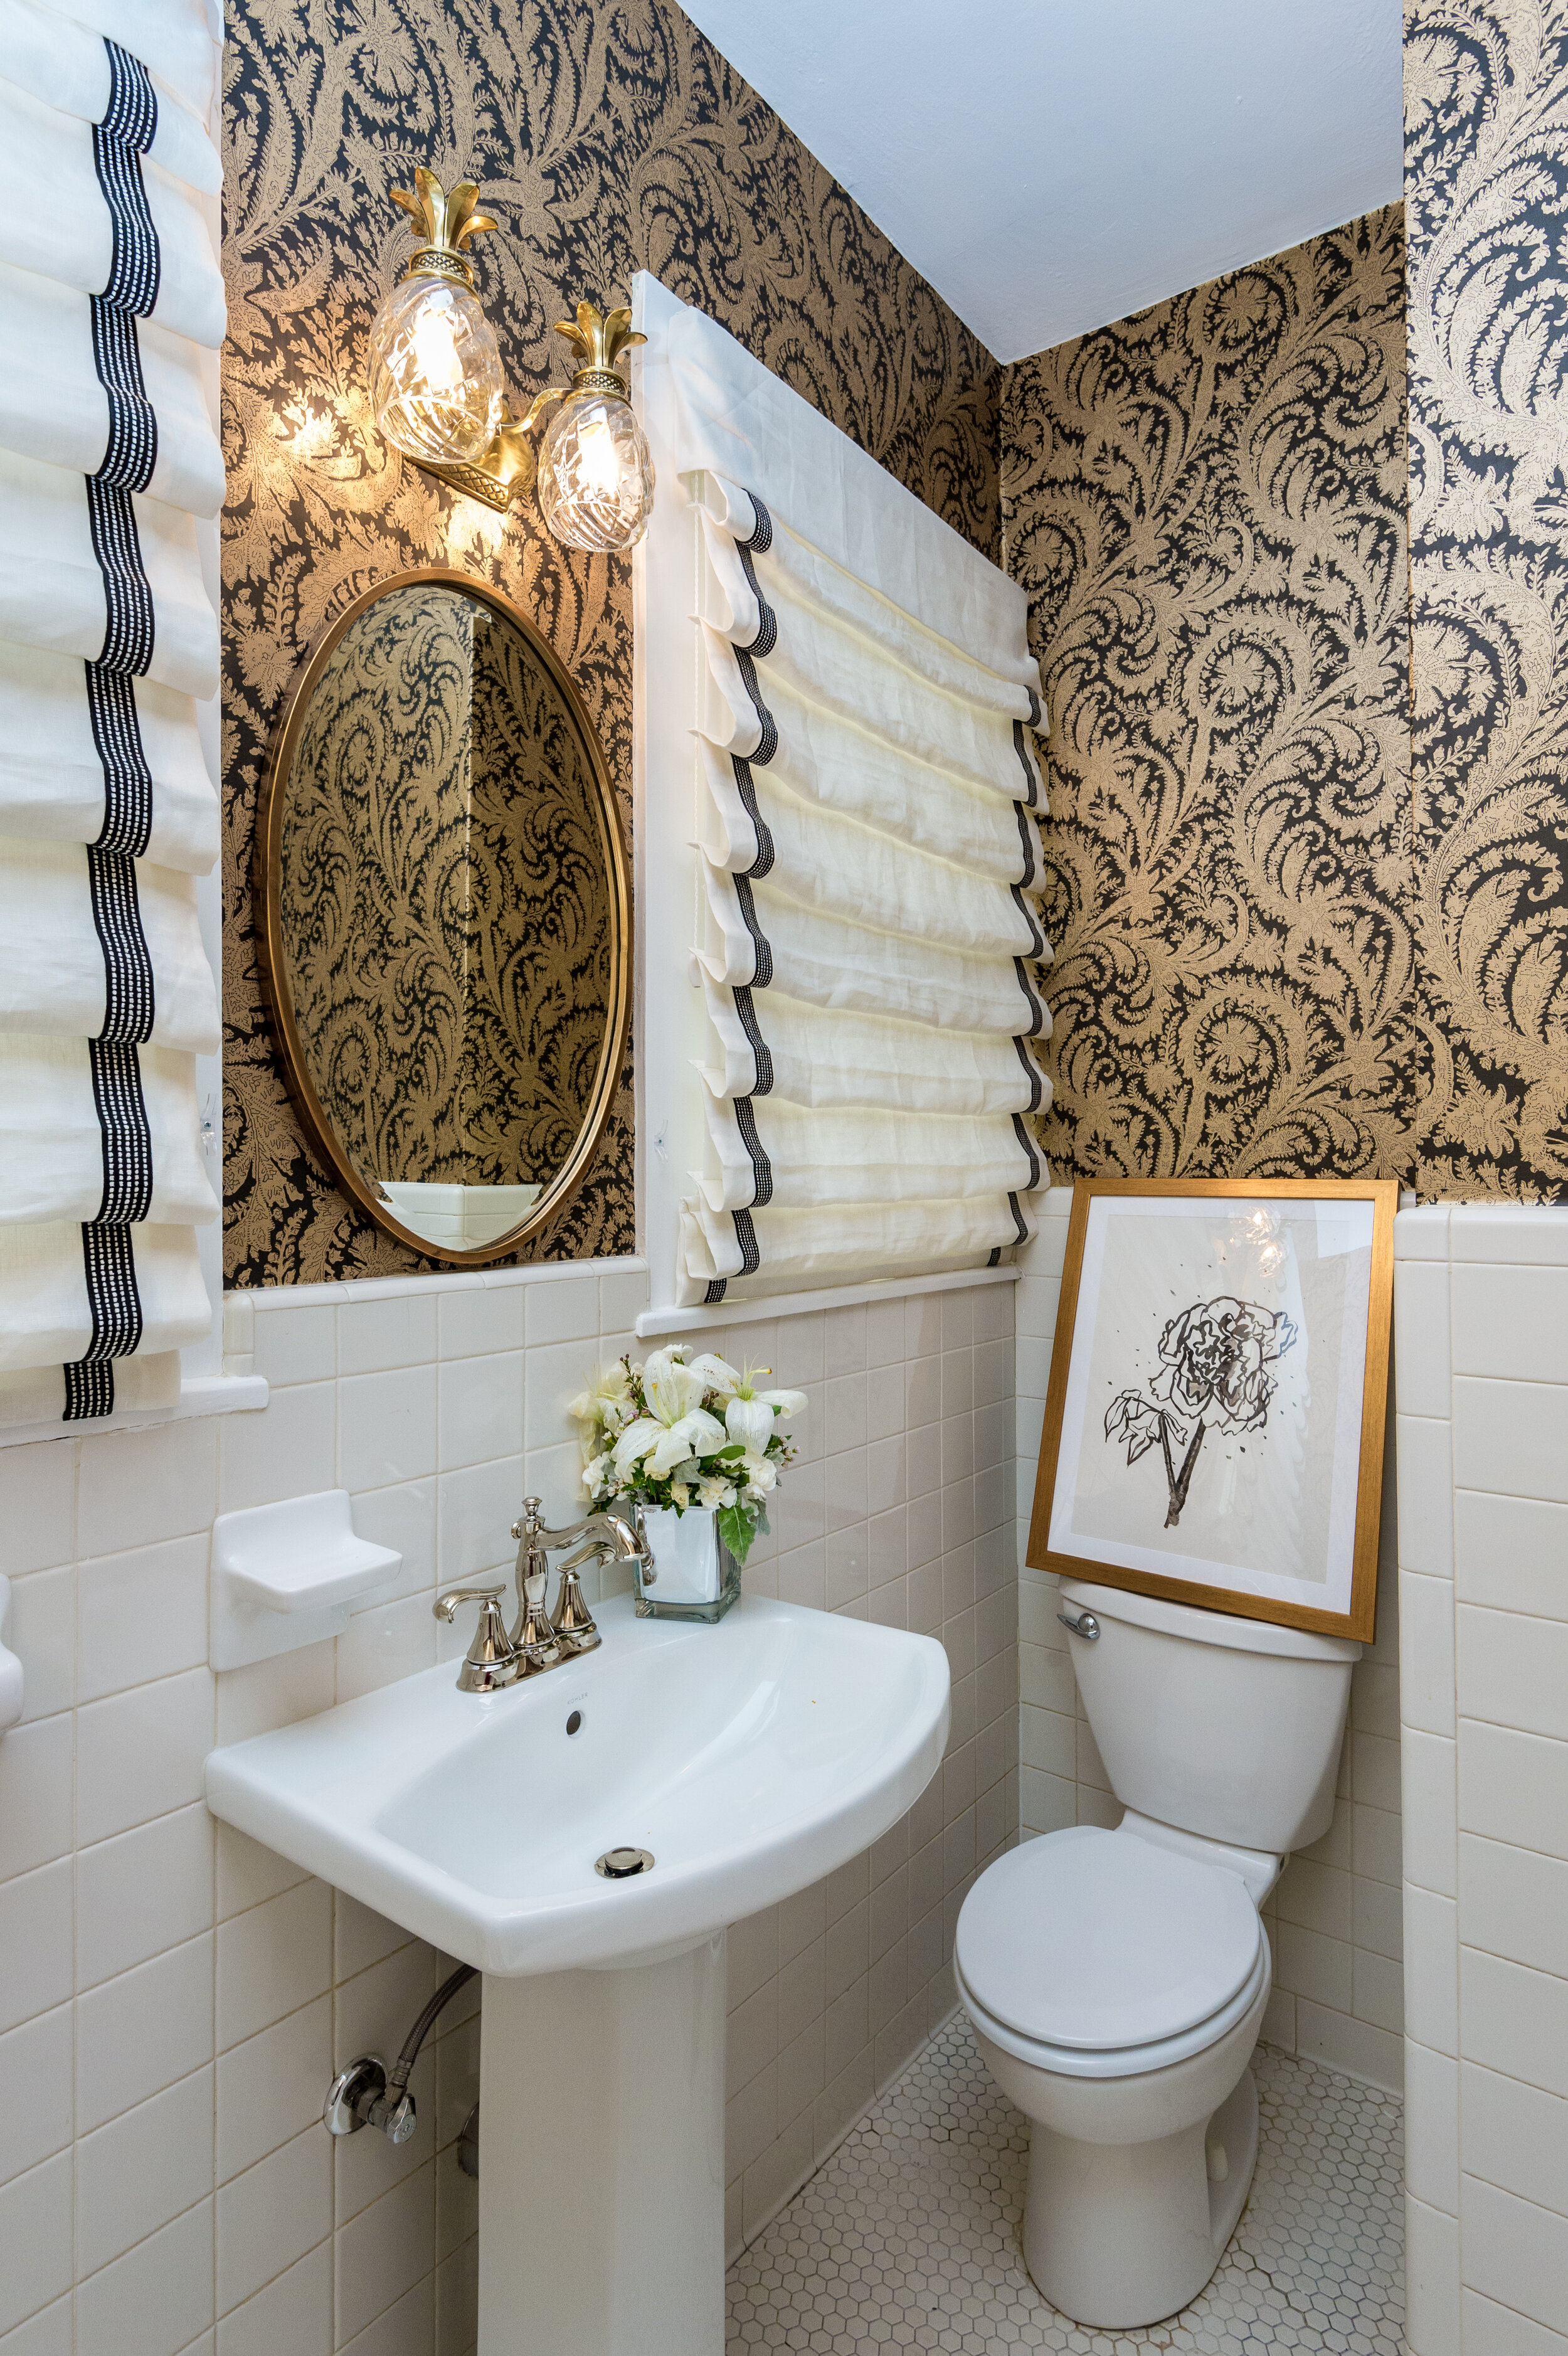 KHB Interiors bathrooms metairie interior designer new orleans interior decorator custom bathrooms new orleans.jpg